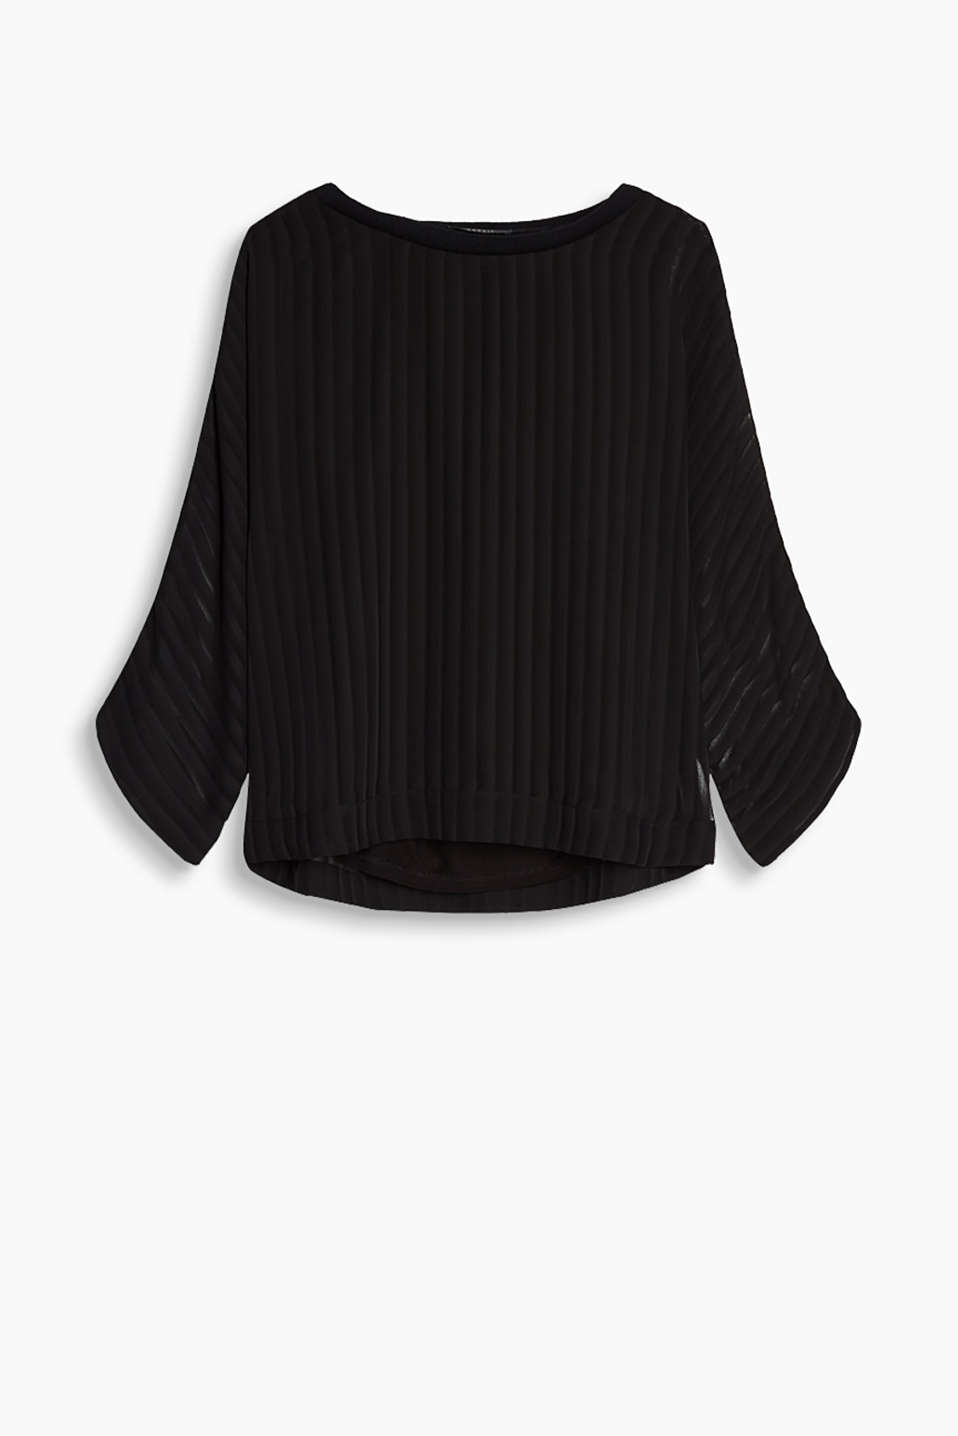 Blouse in flowing chiffon with an integrated top, batwing sleeves and a ribbed round neckline